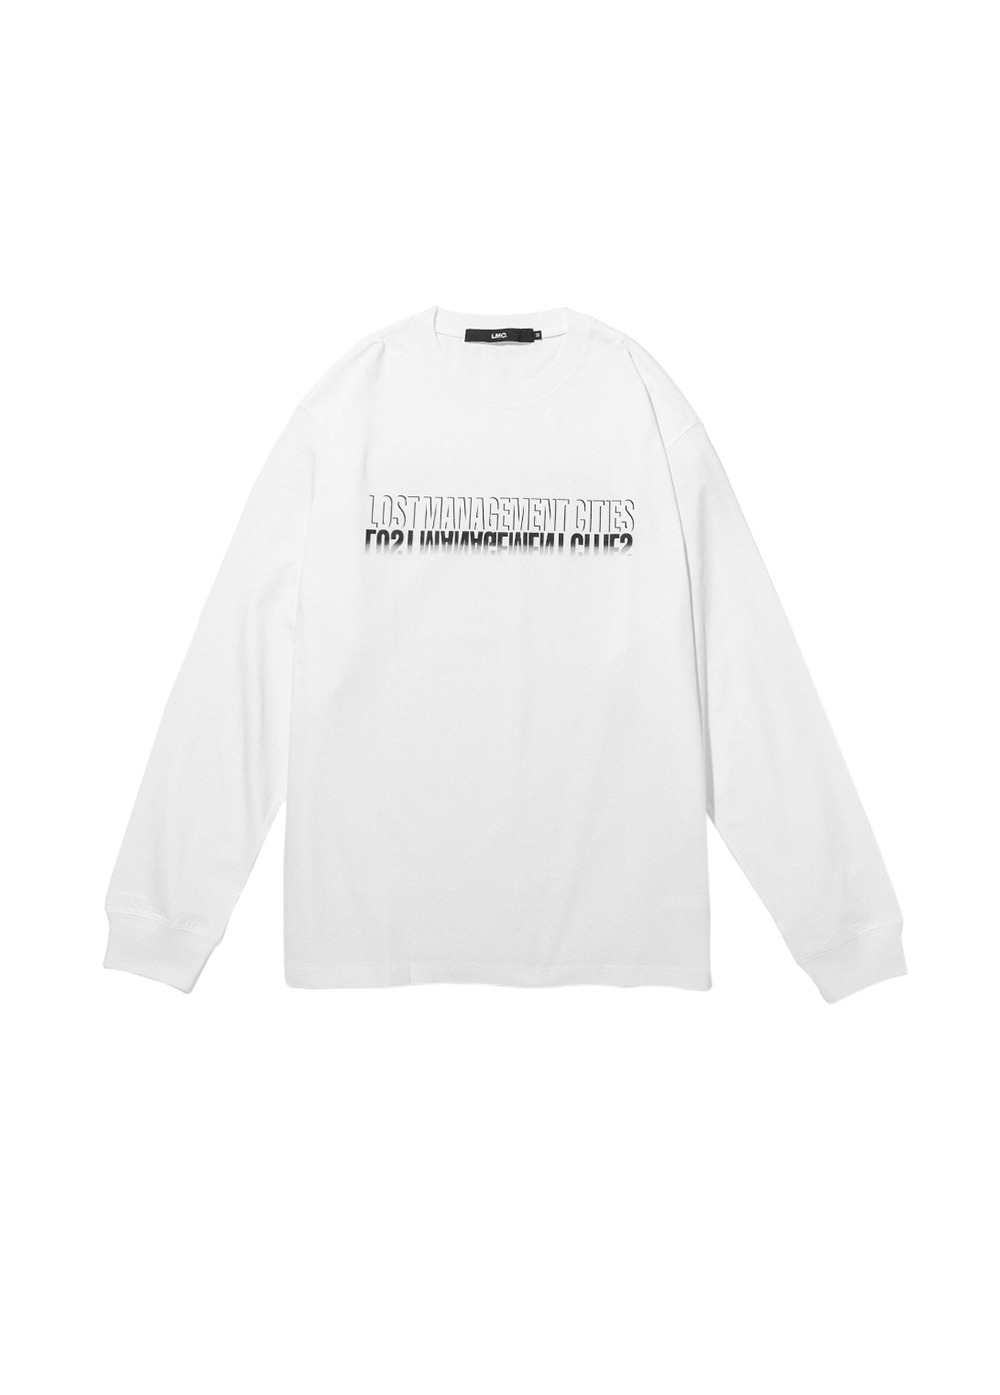 LMC SHADOW FN LONG SLV TEE white